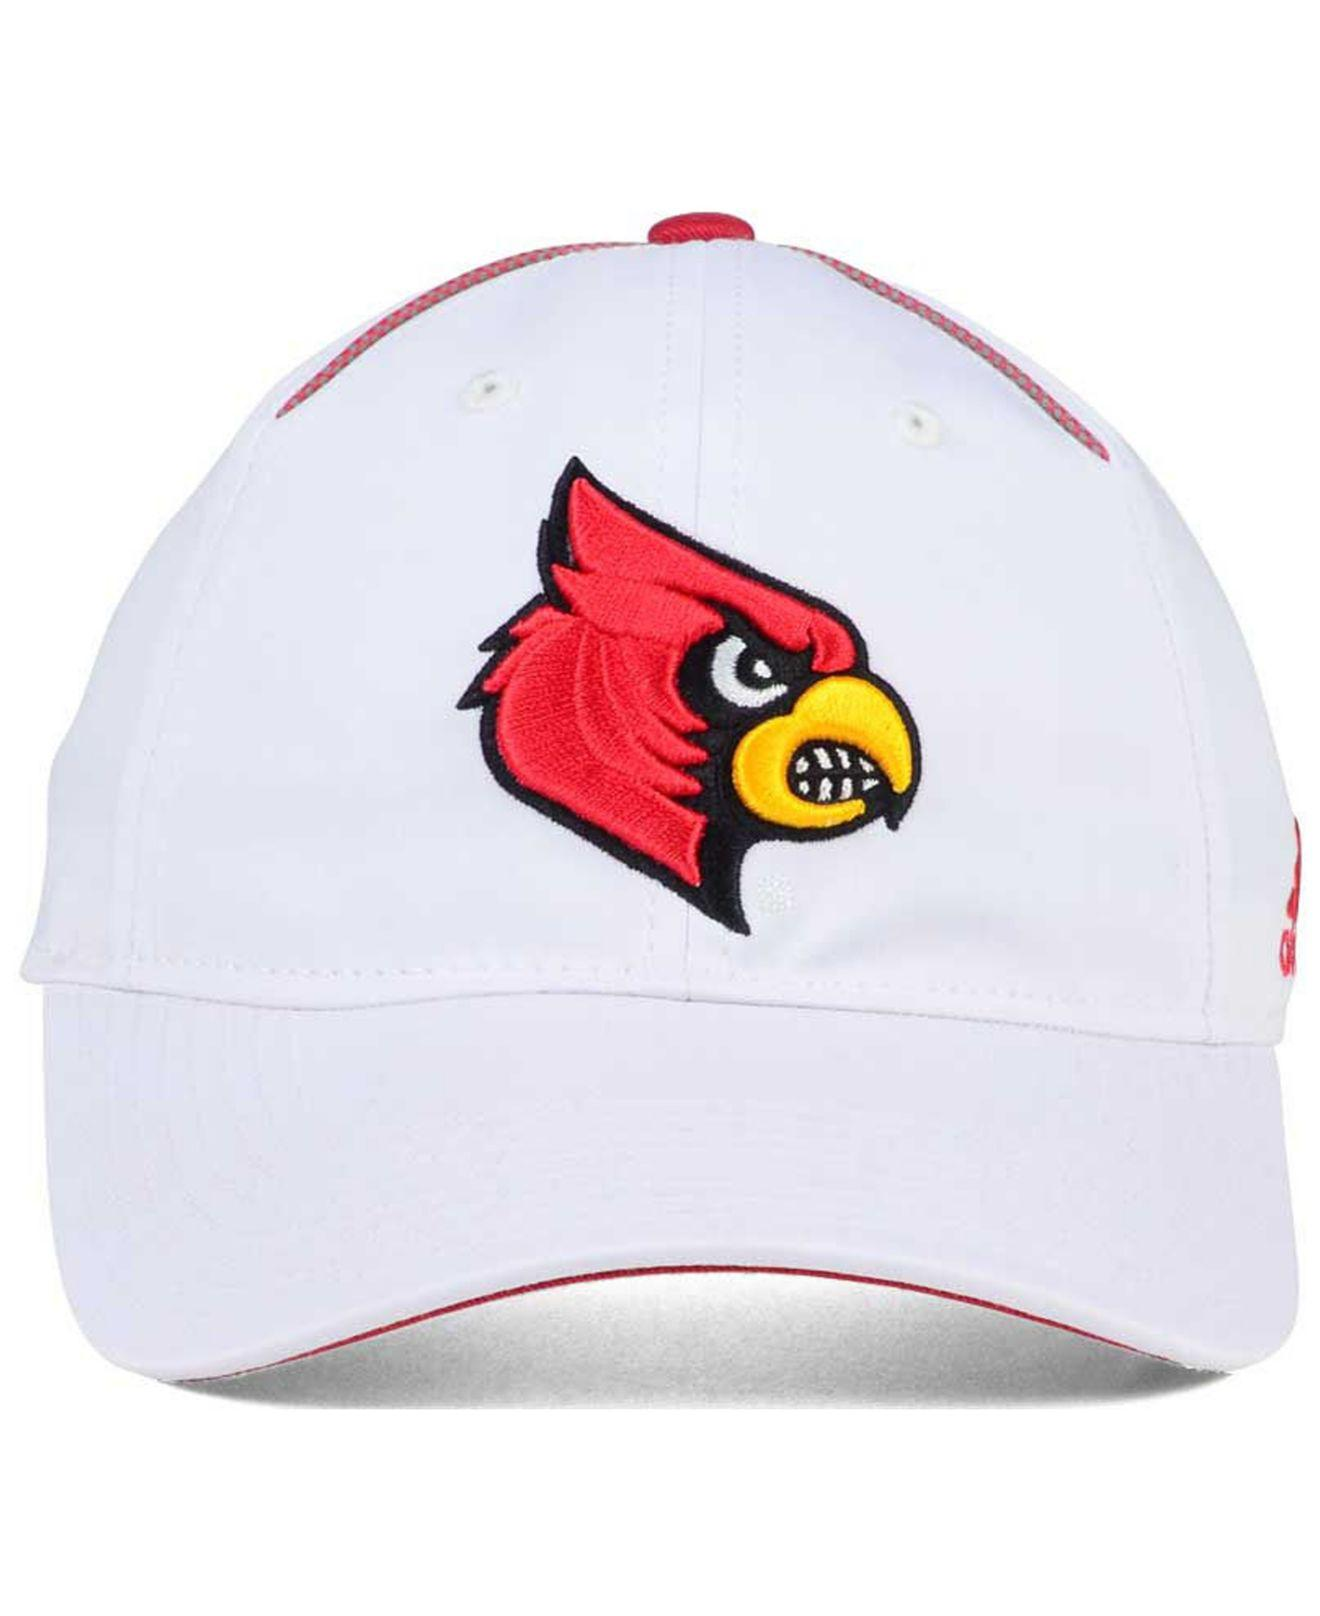 b17b20b3454d2 ... discount code for lyst adidas spring game easy adjustable cap in white  for men 89434 3f615